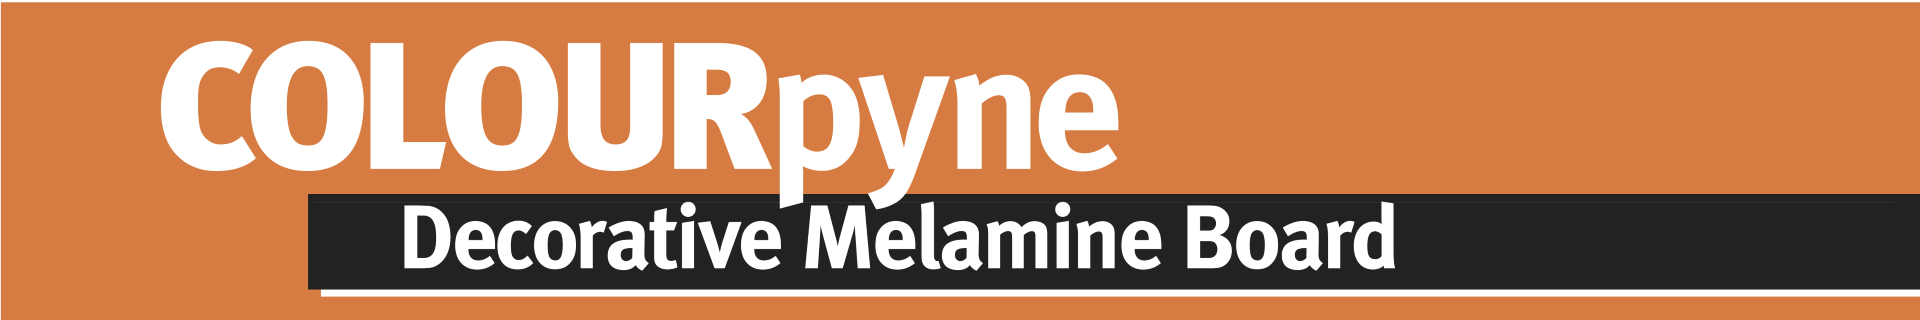 COLOURpyne